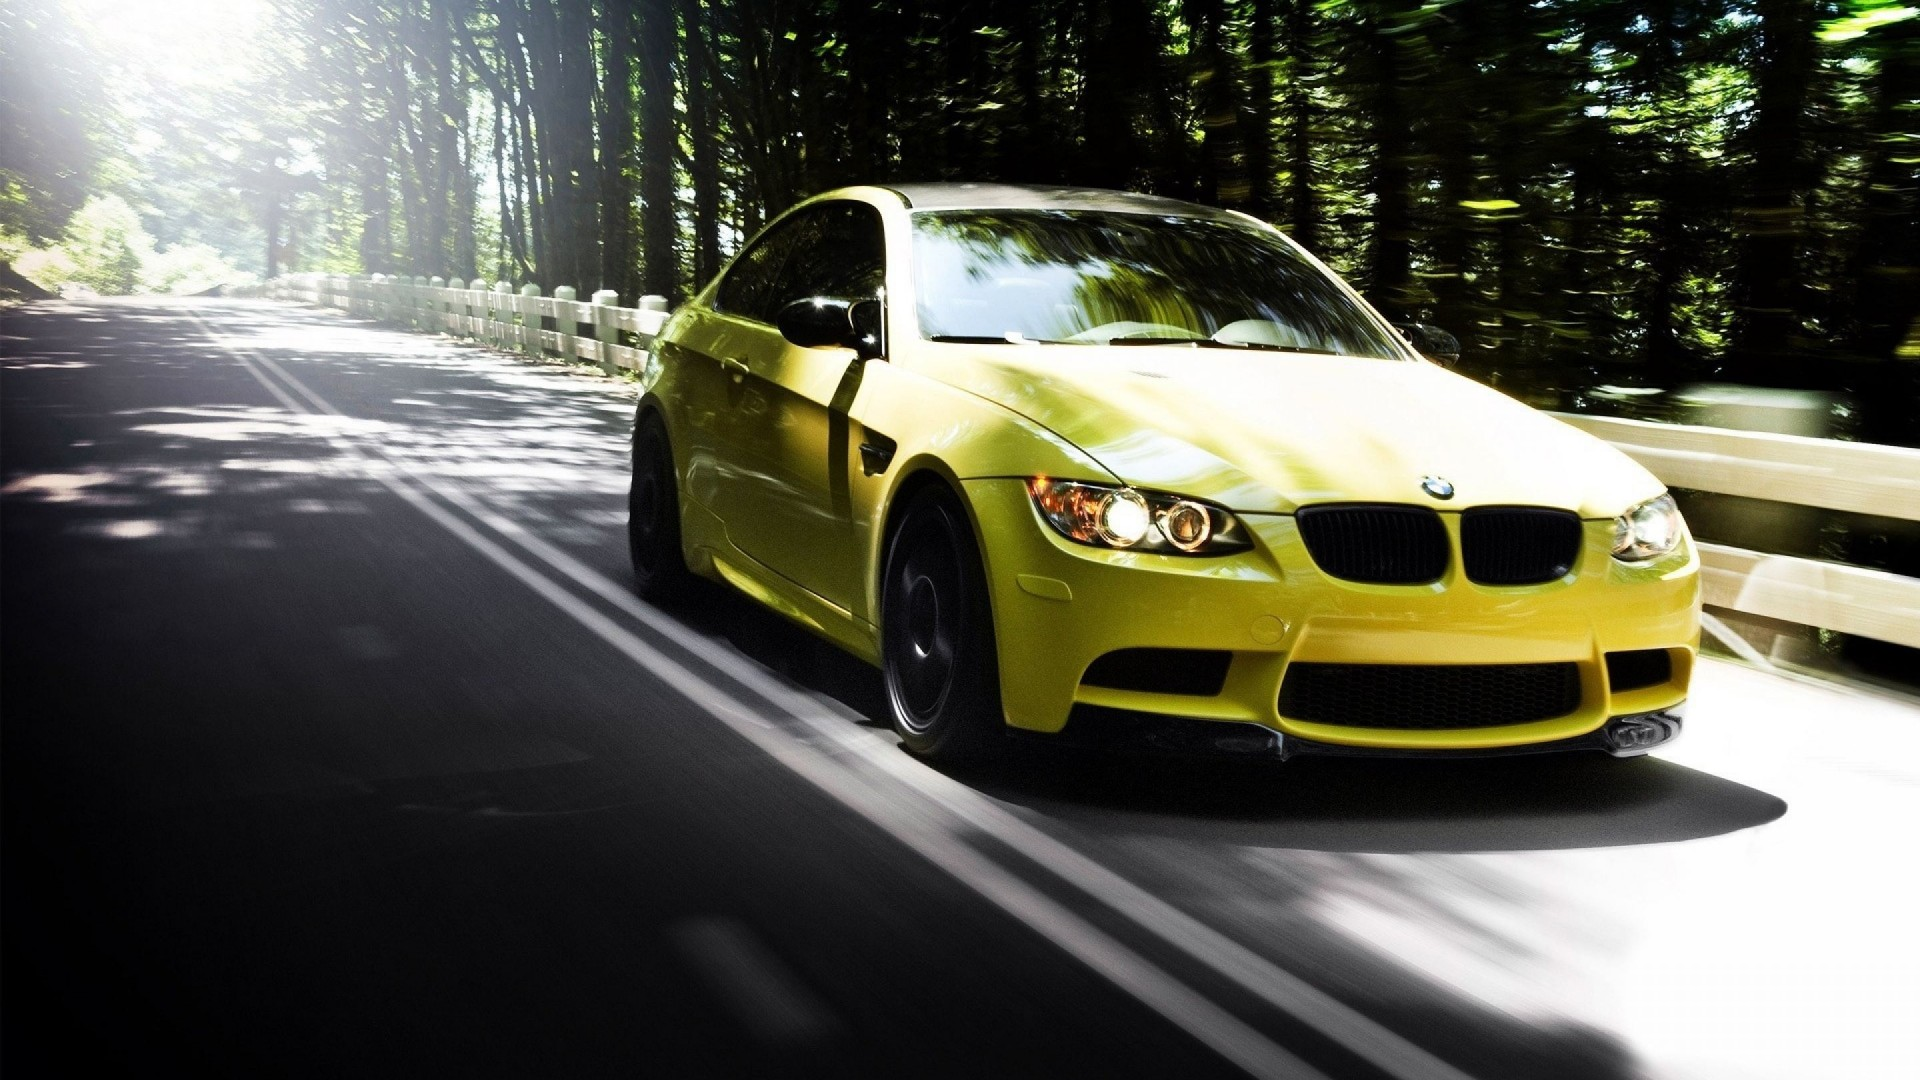 Bmw Car High Resolution Wallpaper for Desktop and Mobiles